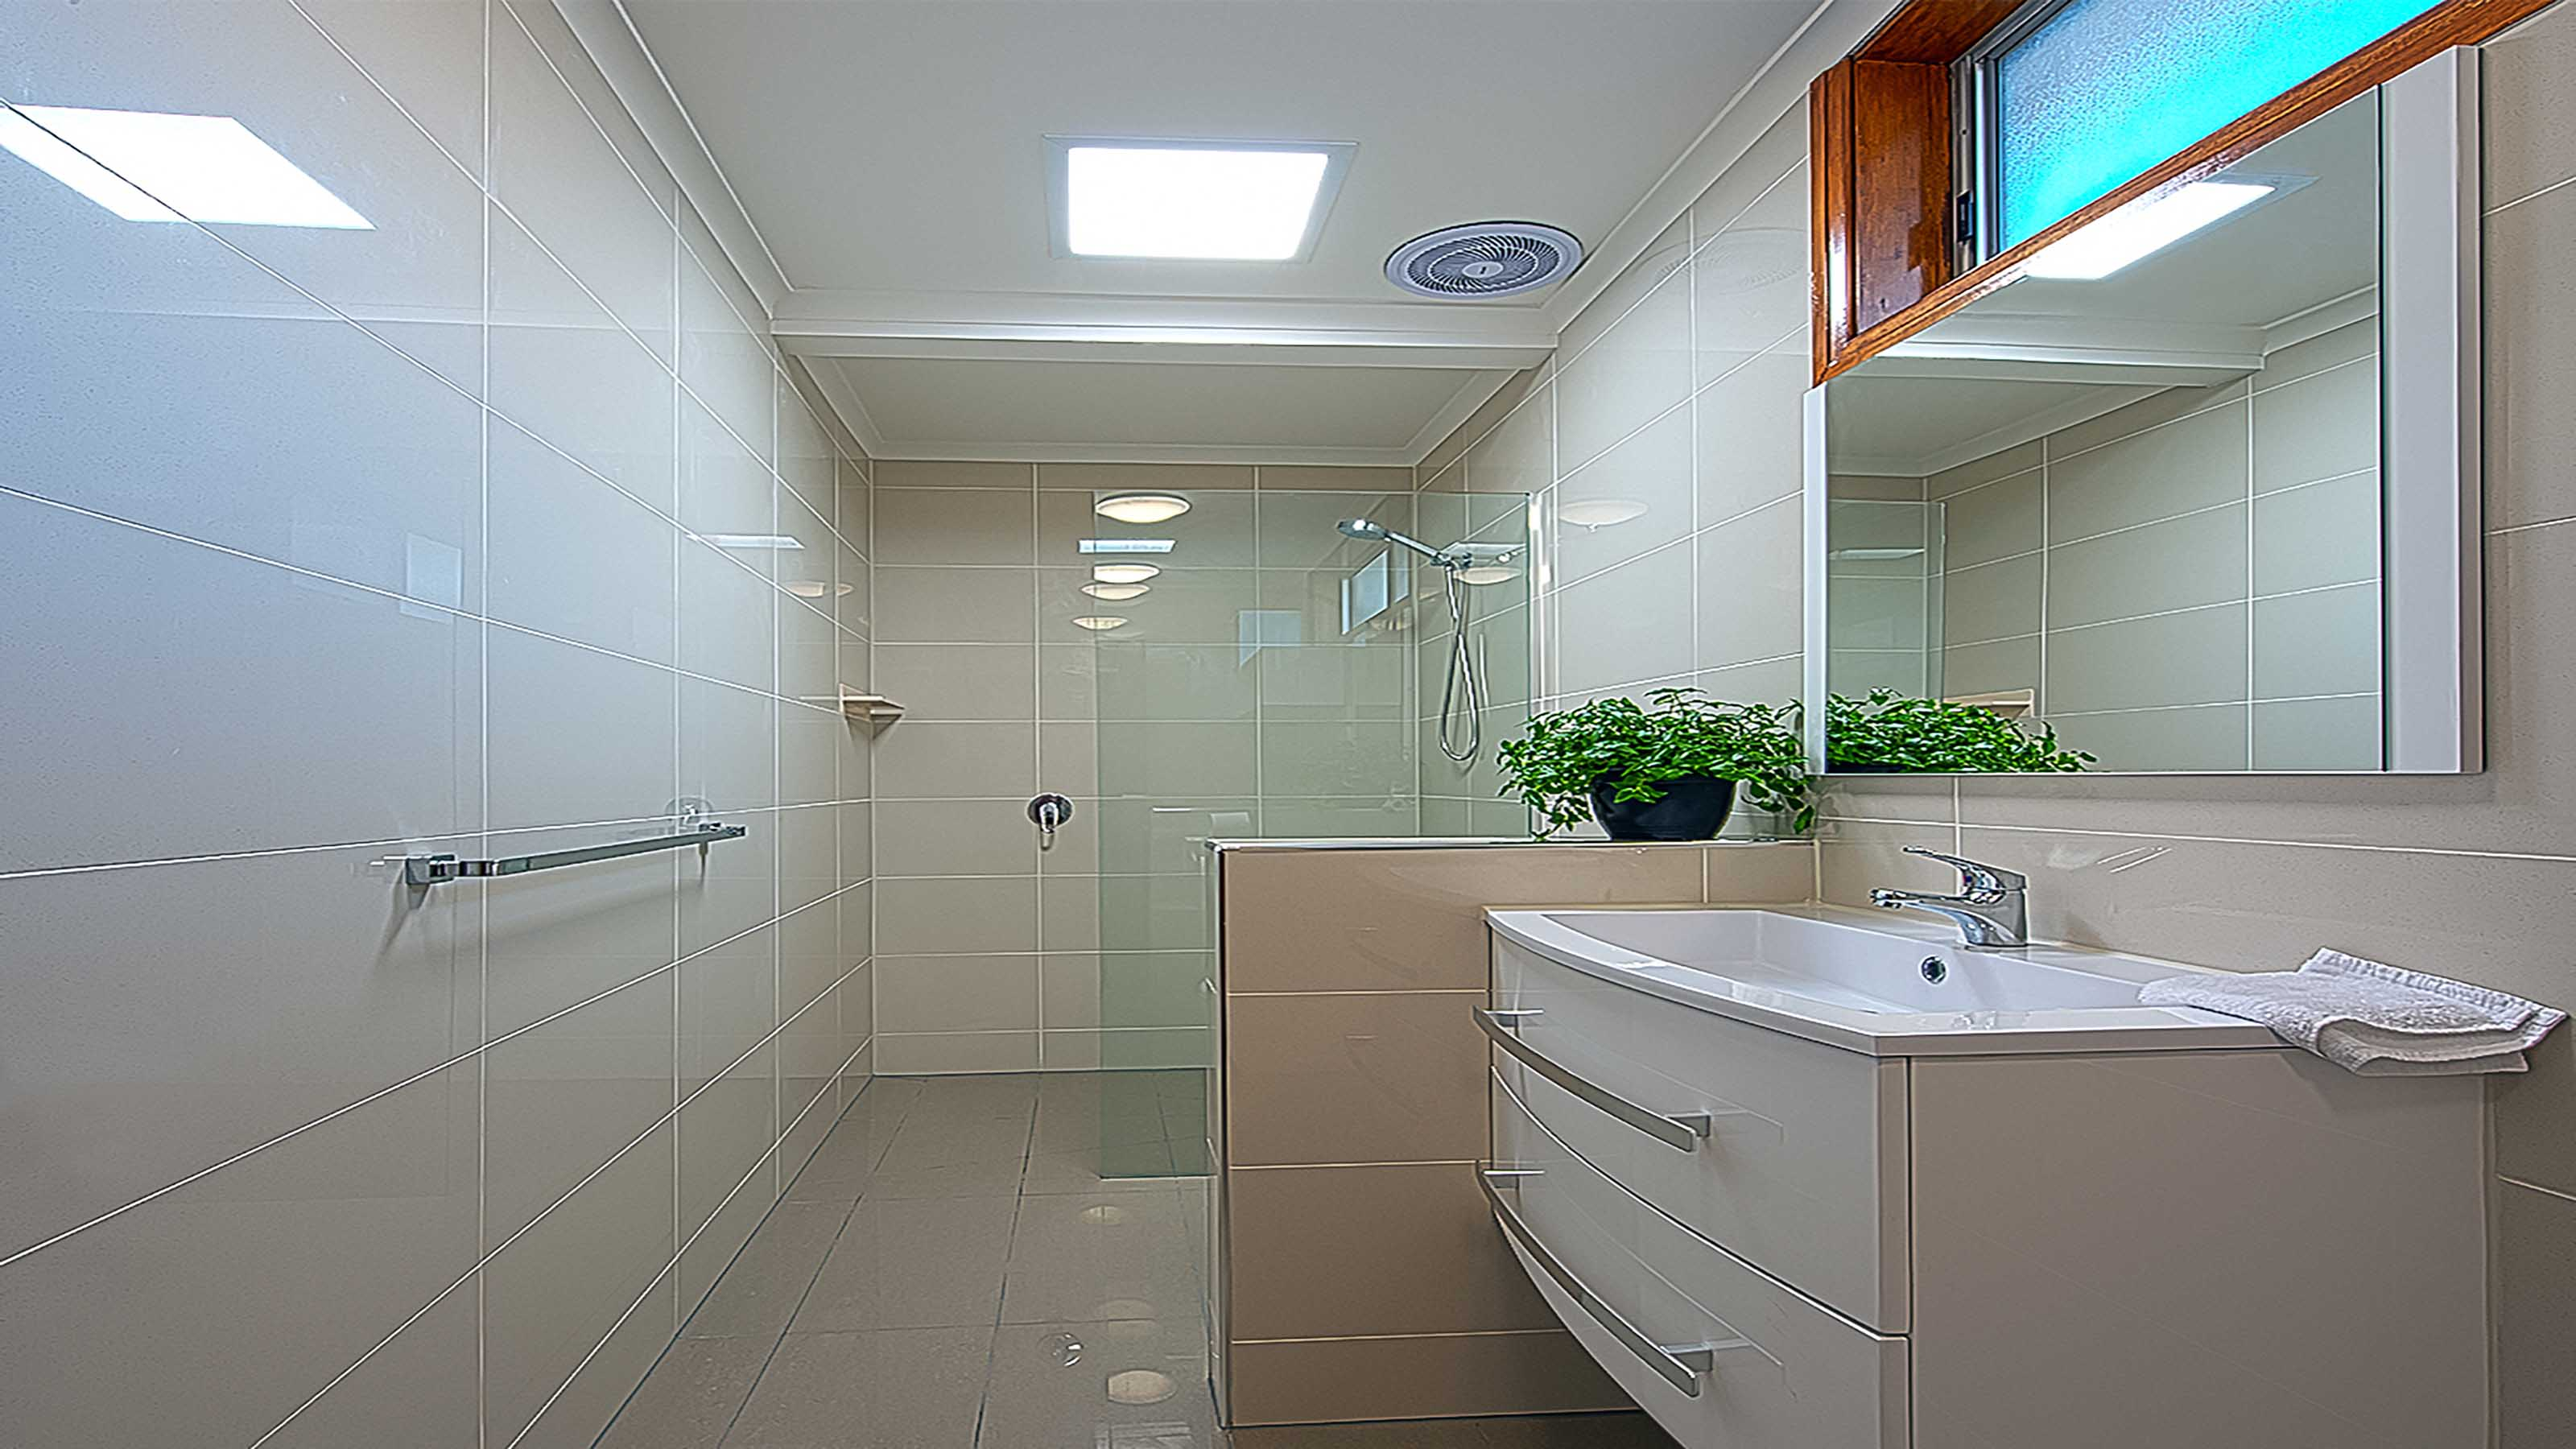 freFLO™ - Frameless Glass Shower Screen Panel - Walk In Shower - In Situ Tile Floor Shower Base - Bathroom Ensuite - Belmont - Supplied & Installed by - geelongsplashbacks.com.au